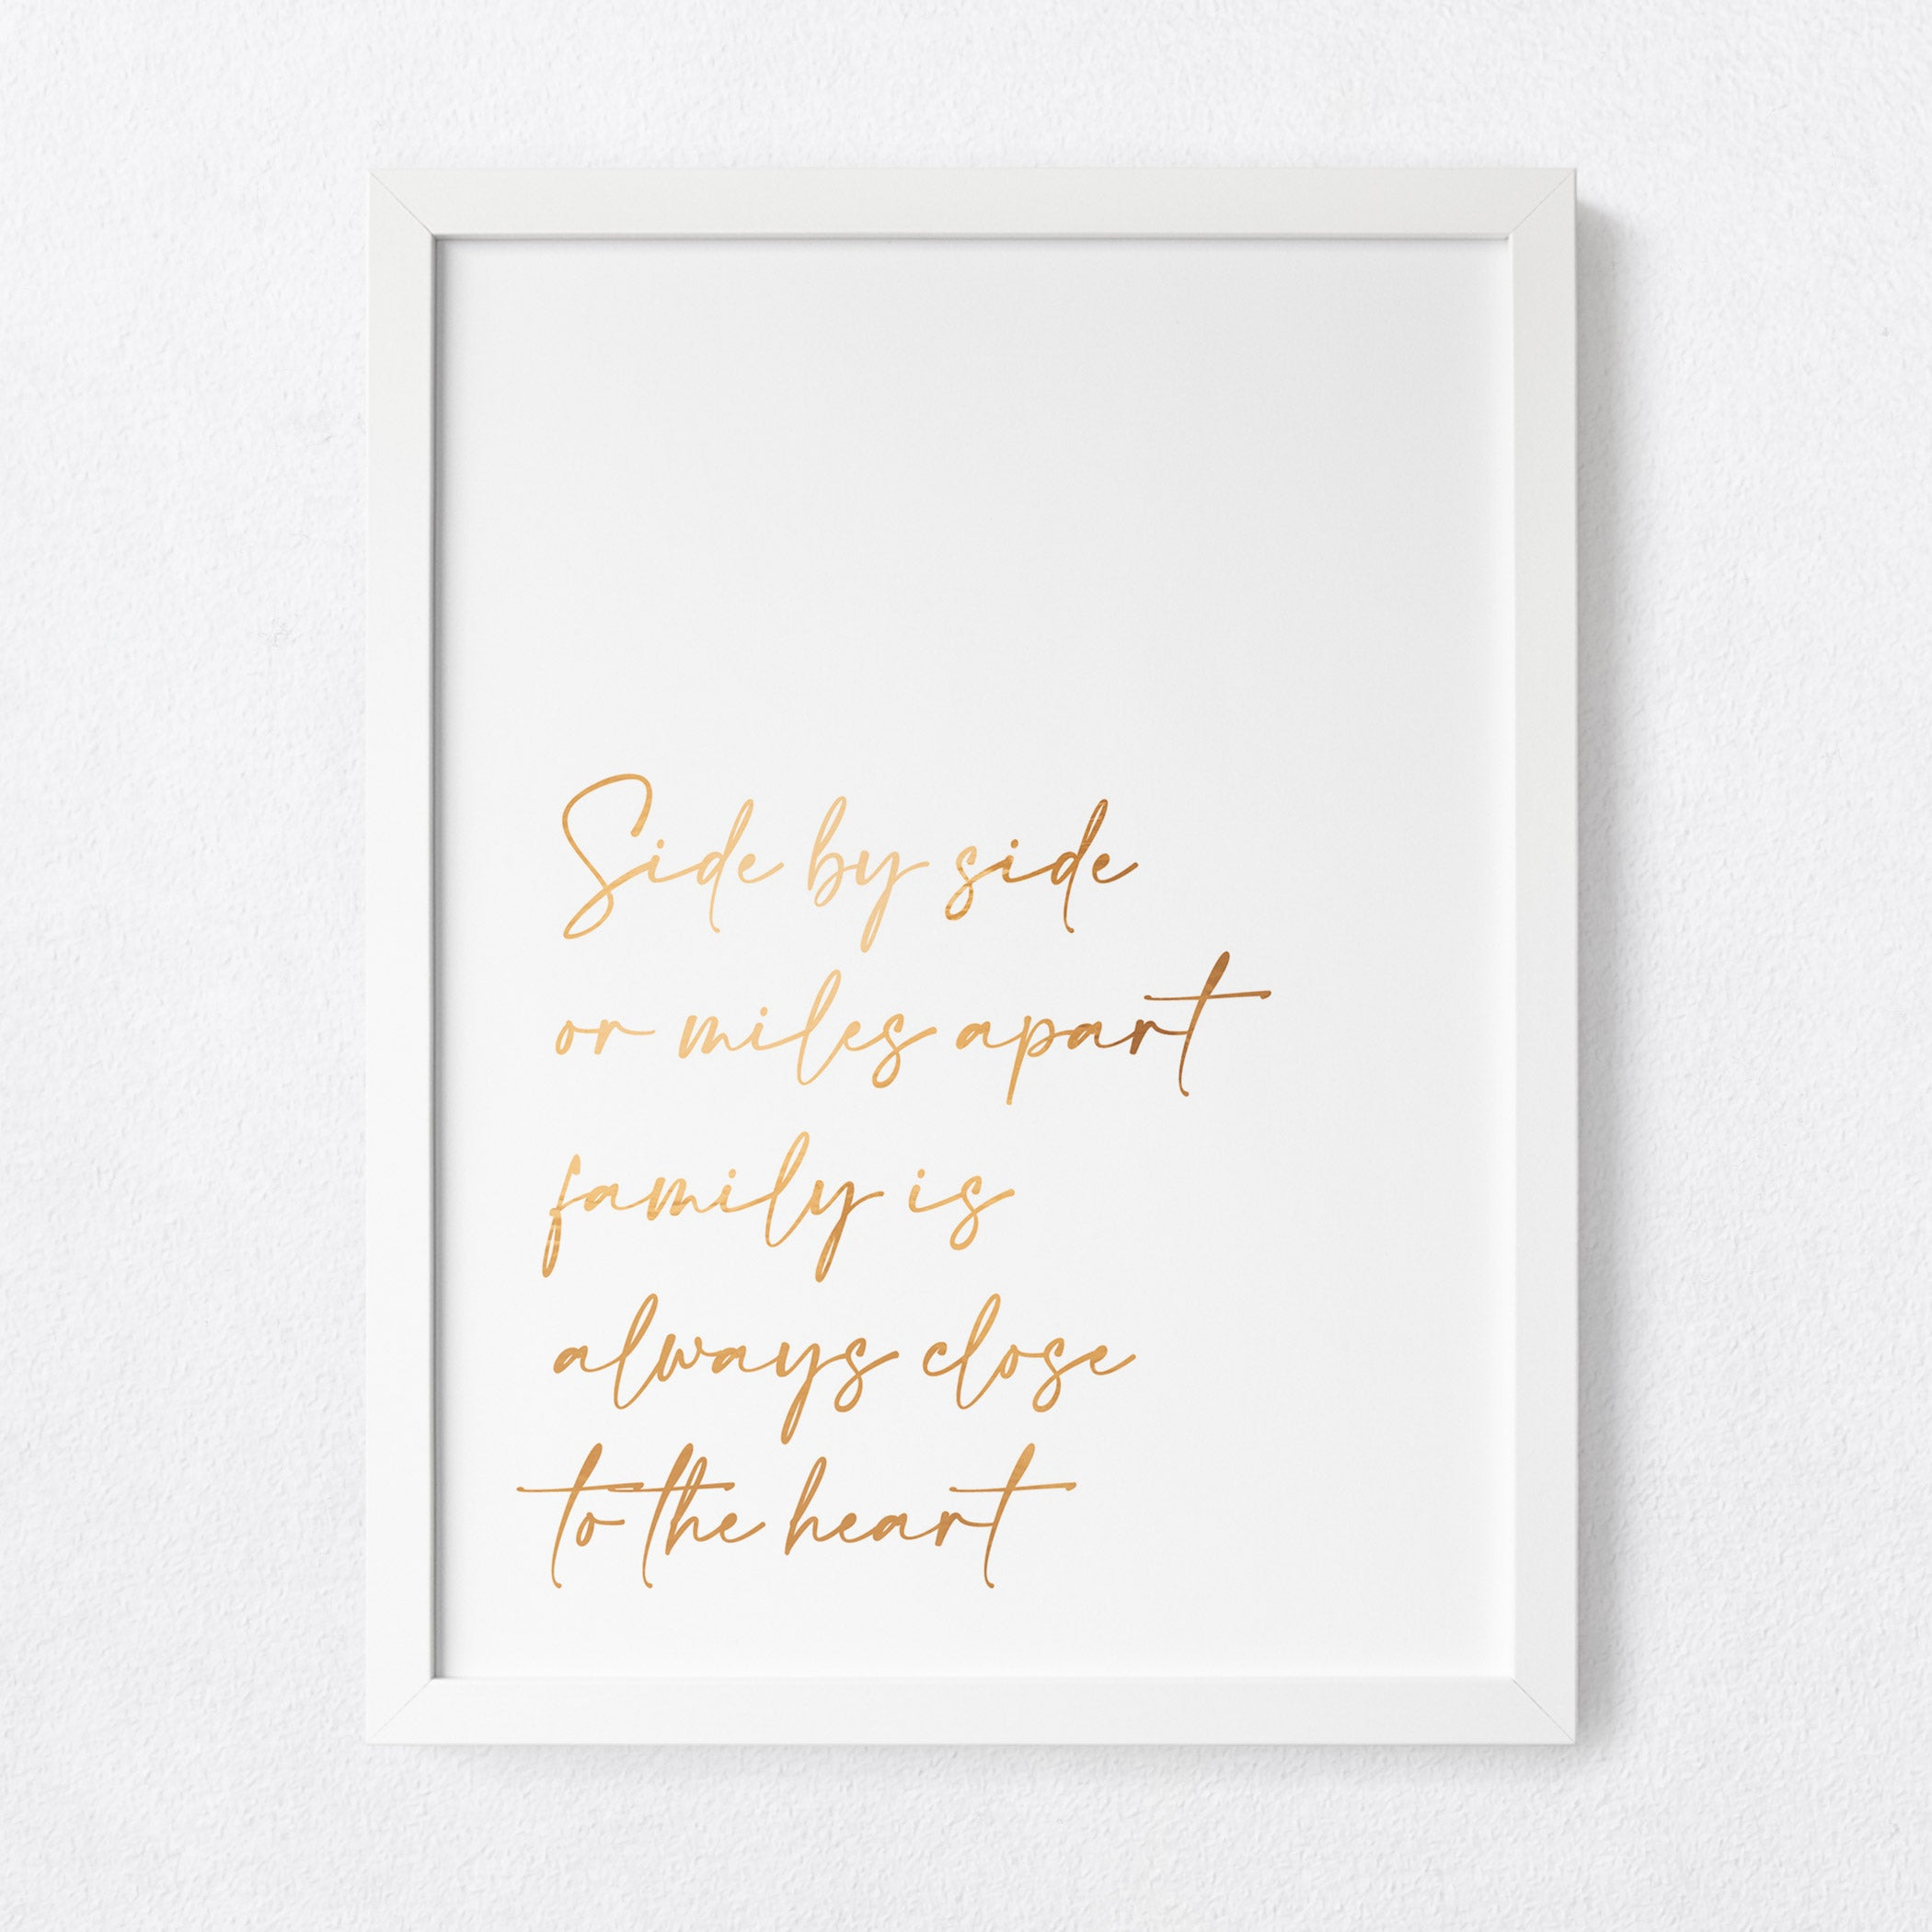 Family is always close to the heart - foil print